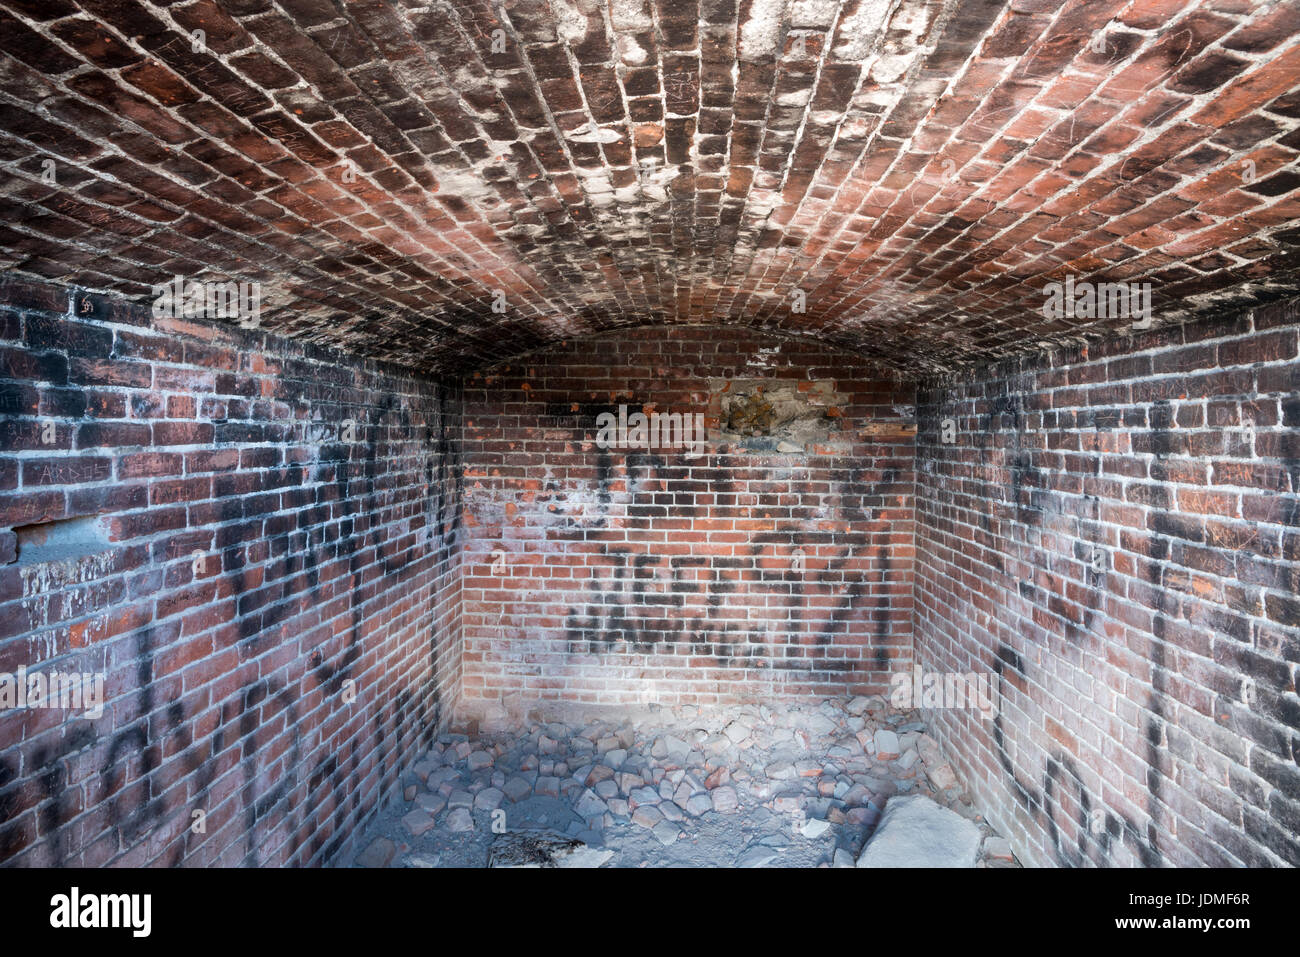 Explosives store room at an old stamp mill in East Belmont, Nevada. - Stock Image